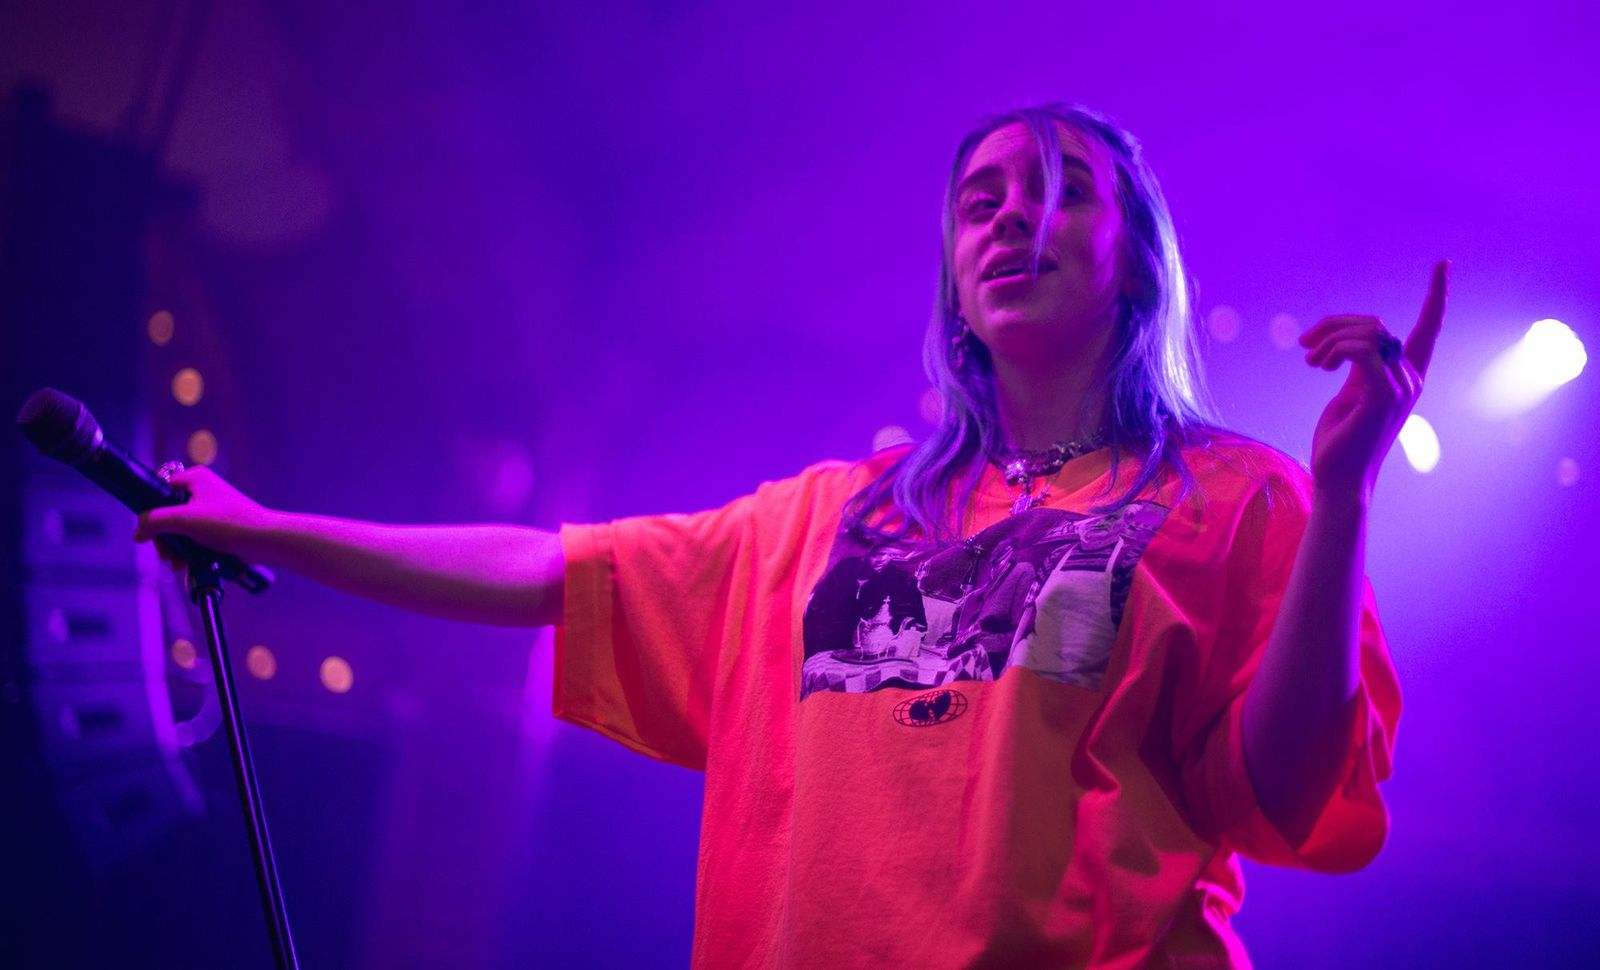 Billie Eilish slayed her sold out show at the rystal Ballroom Monday night as part of 94.7 fm's December to Remember concert series. The 16-year-old multi-platinum singer just wrapped up a nationwide tour and is set to release her first full-length album next year. (Photo by Tristan Fortsch for KATU News on December 10, 2018)